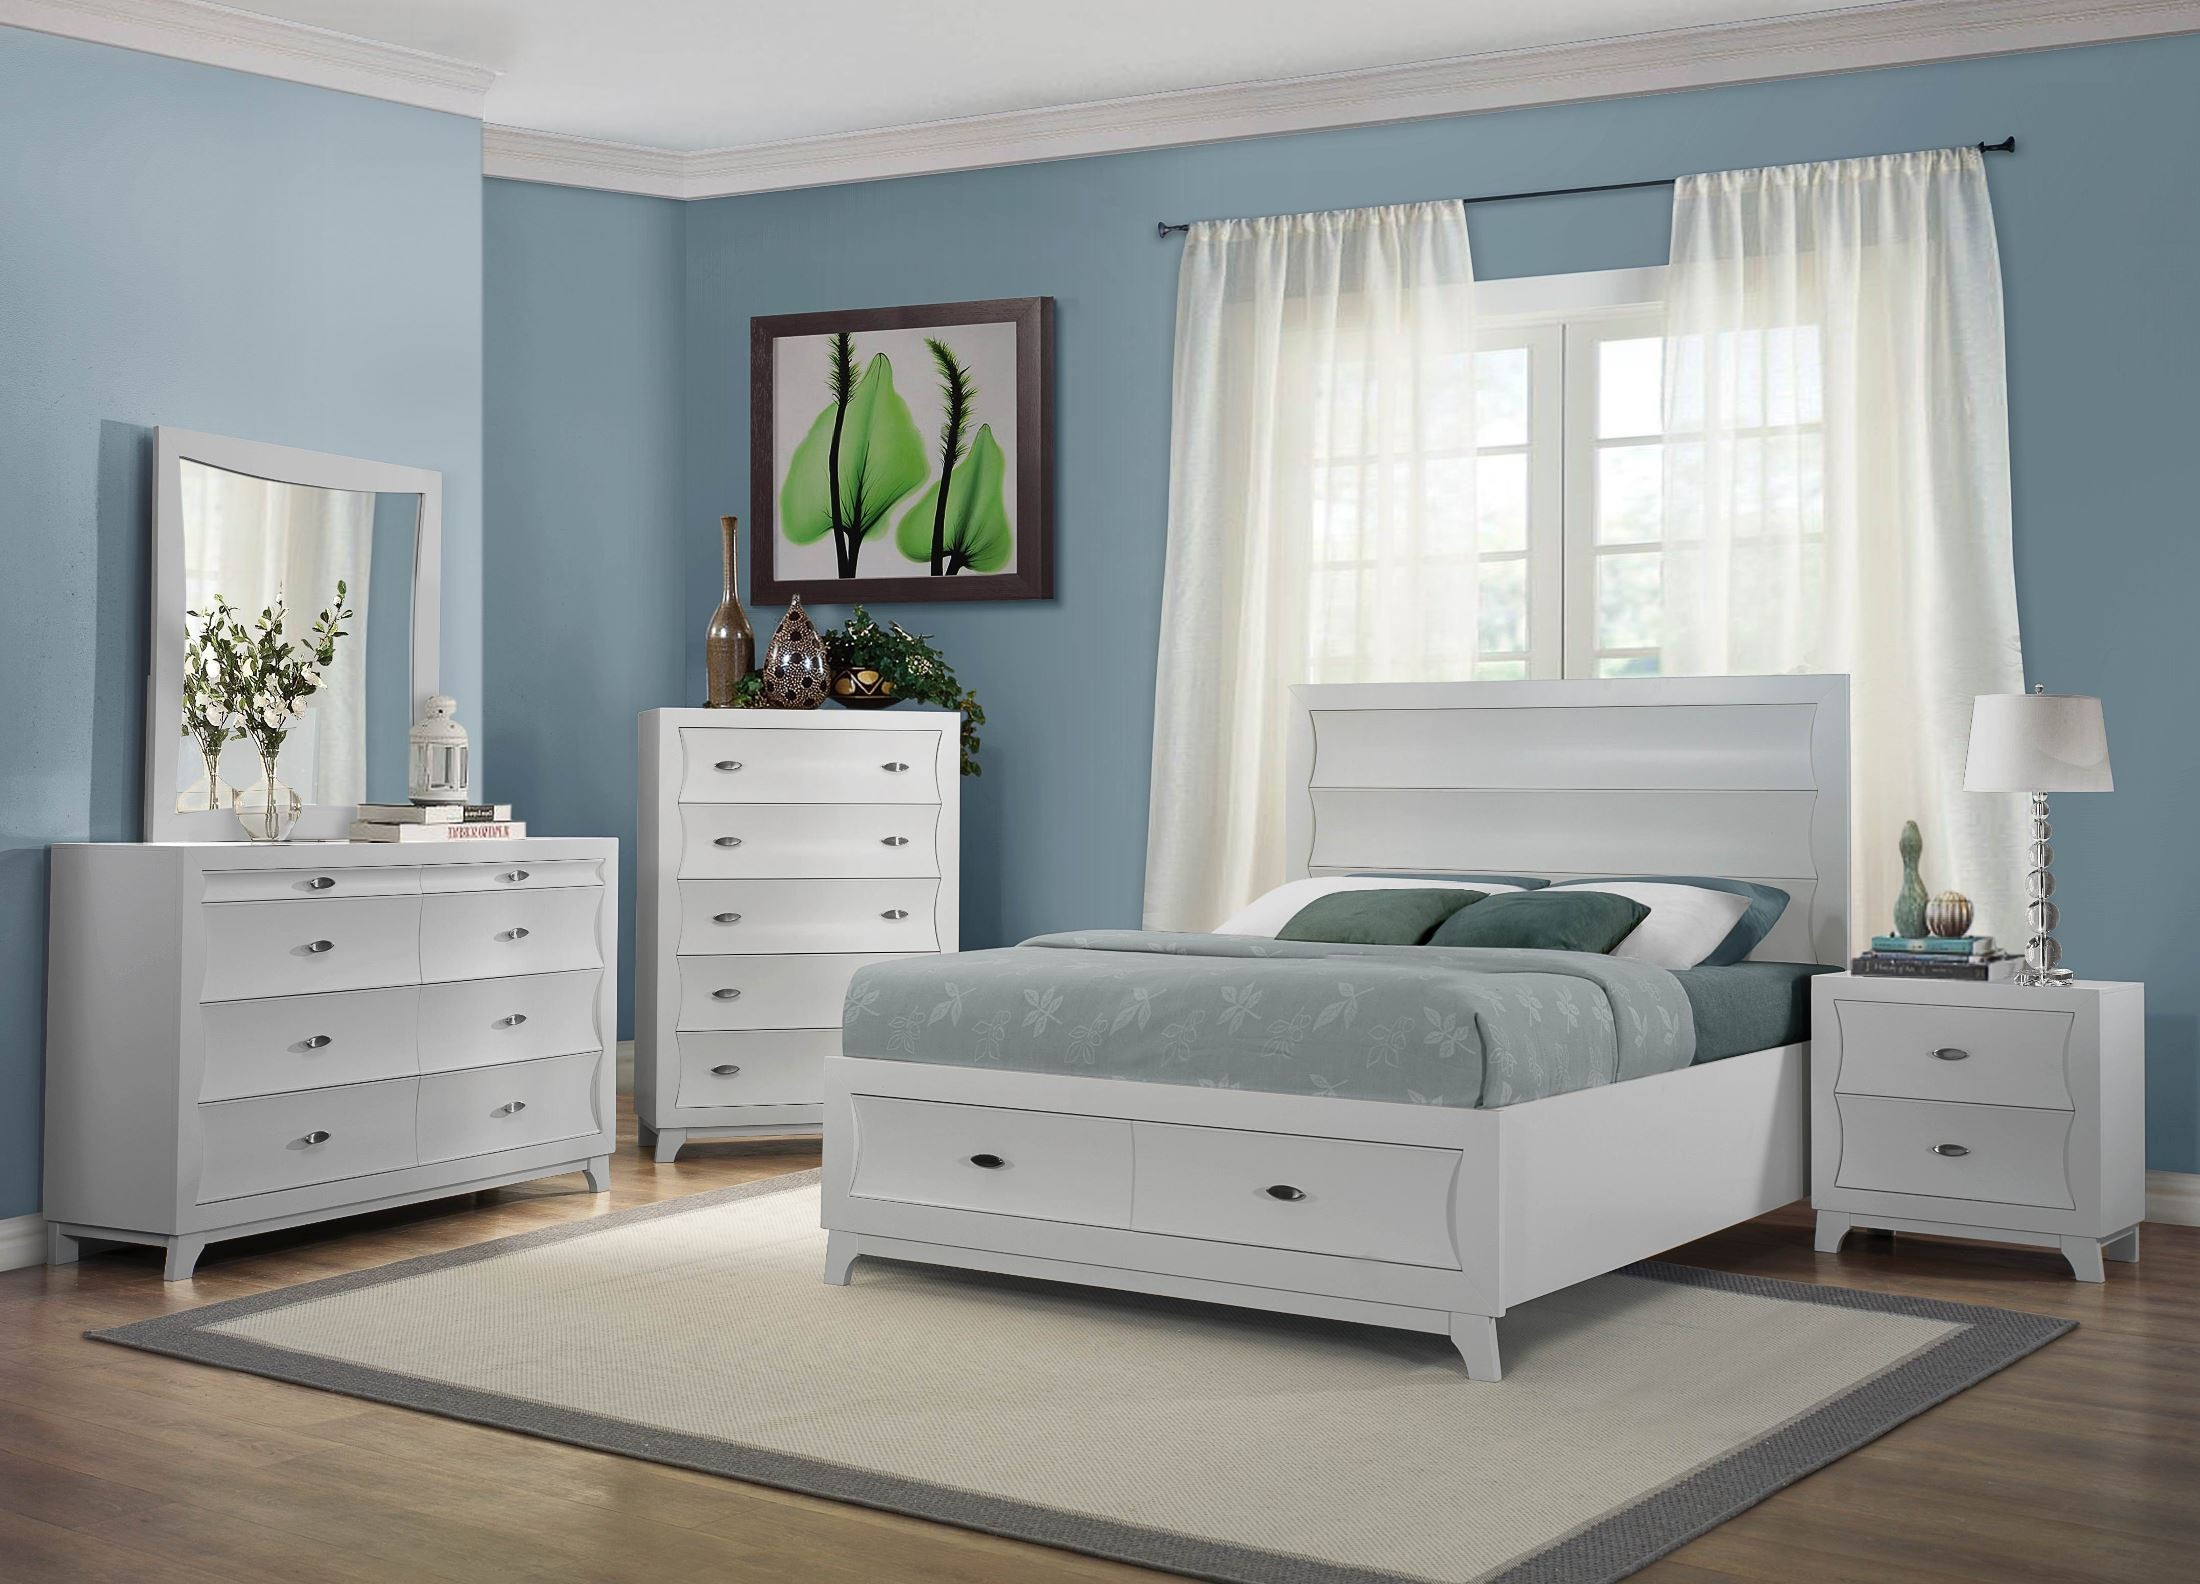 Zandra white platform storage bedroom set from homelegance for White bedroom furniture set